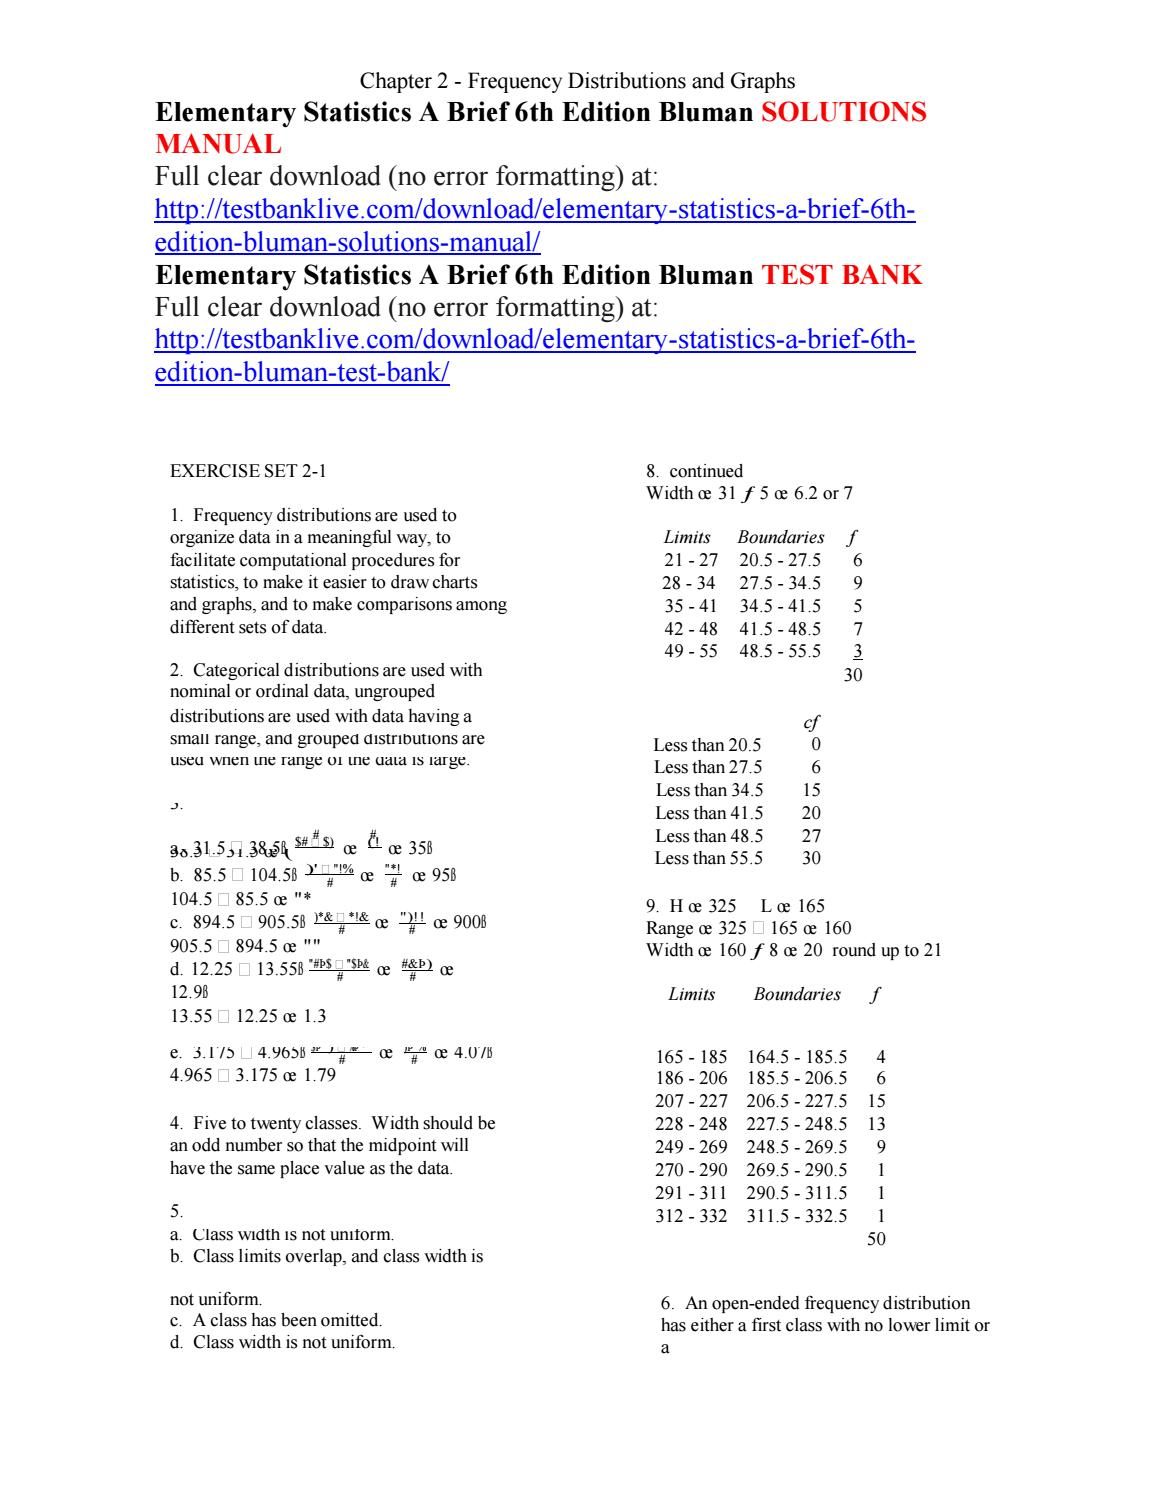 Elementary statistics a brief 6th edition bluman solutions manual by  asdfg111 - issuu